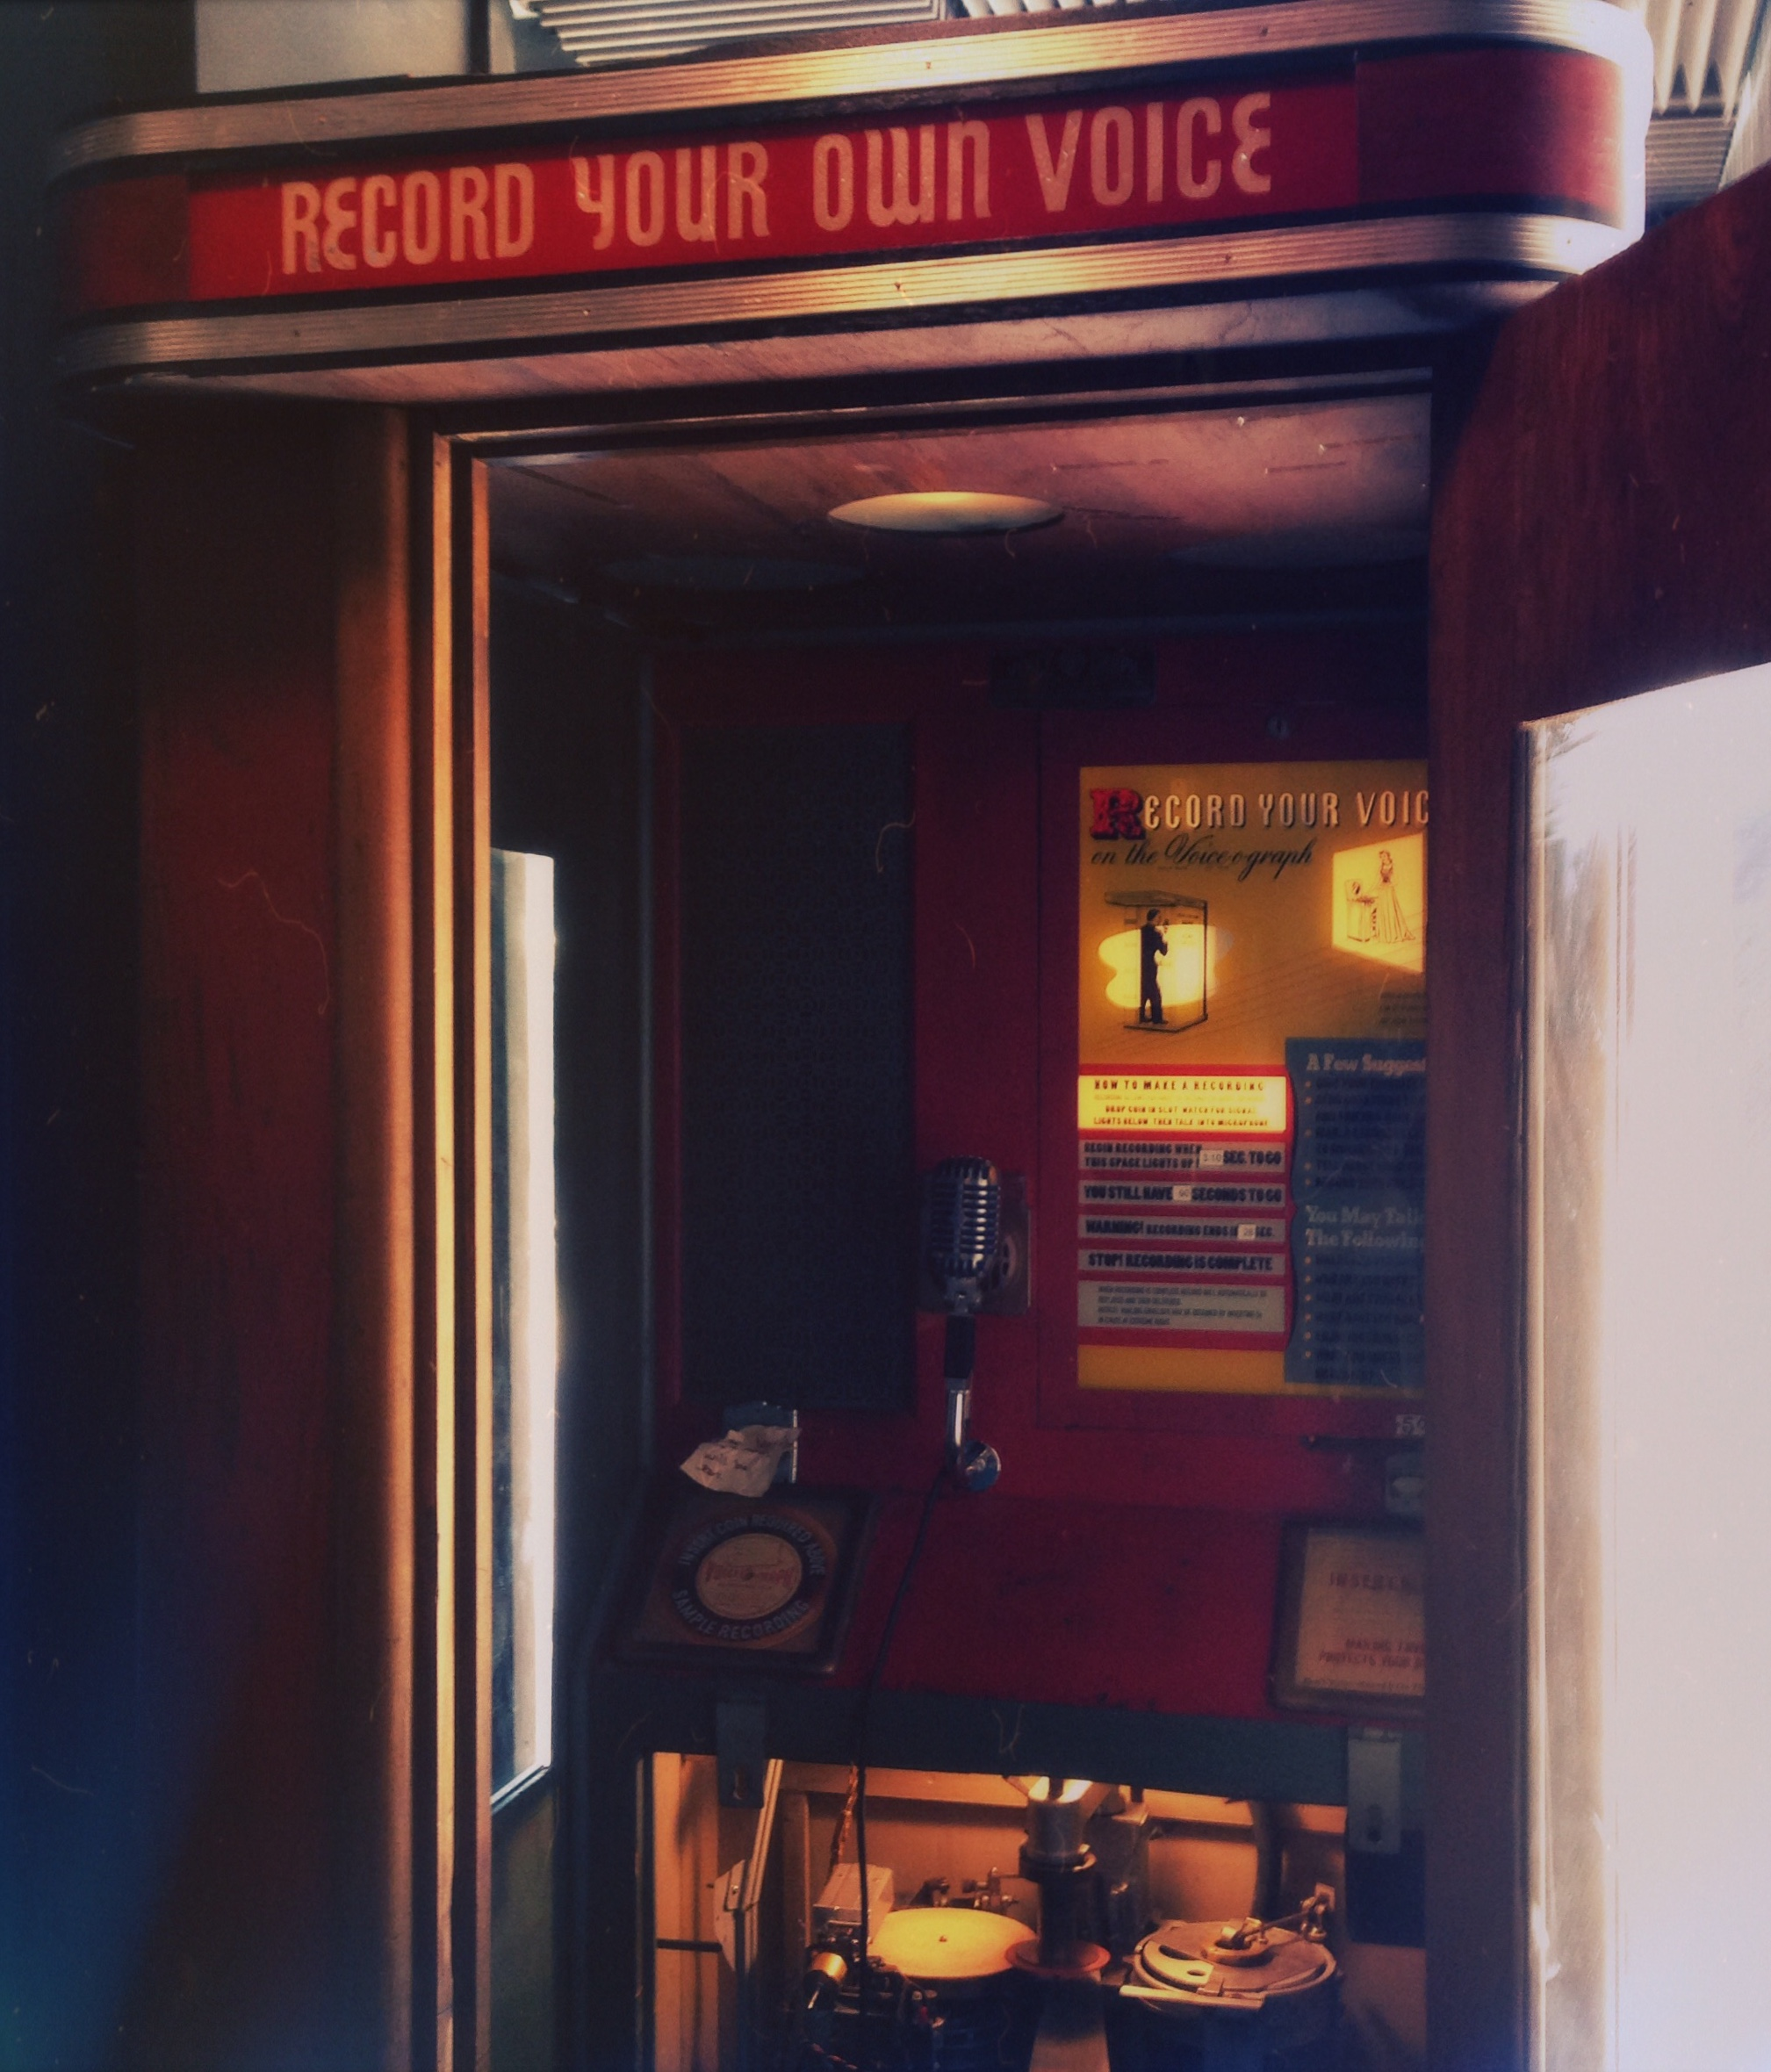 Voice recording machine